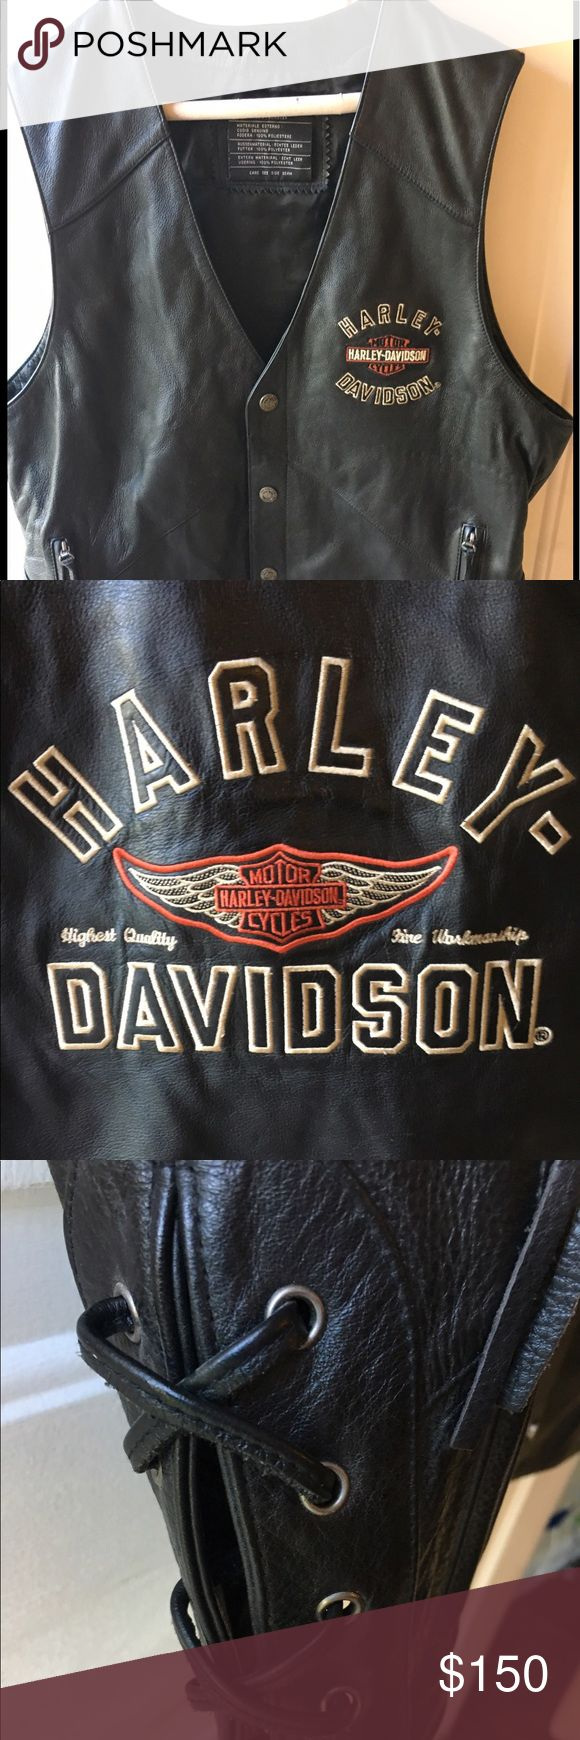 Men's Genuine Leather Harley Vest Never been worn. Has been stored in s suit bag. Excellent condition and perfect for Harley Davidson lovers. Will not be disappointed! Harley-Davidson Jackets & Coats Vests